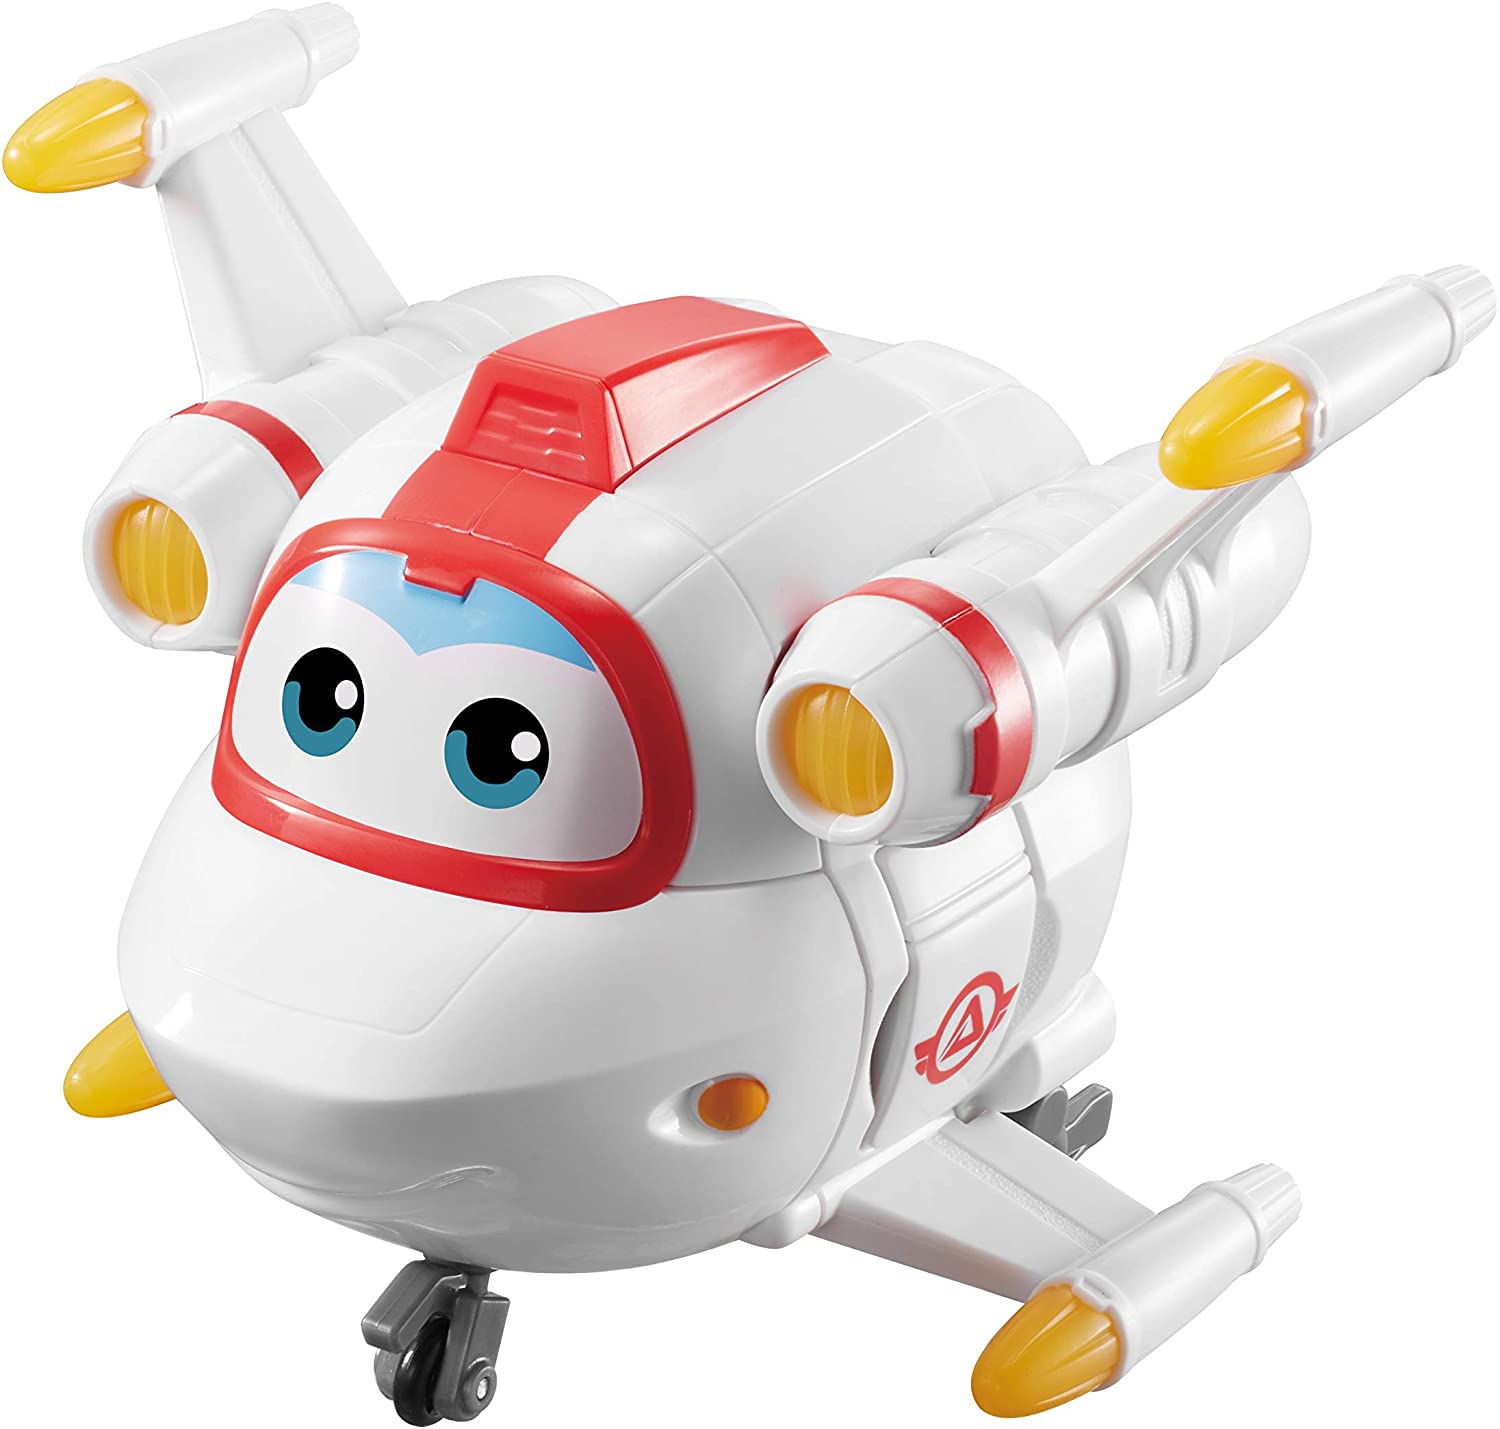 Super Wings Astro Figura de Juguete, Color Blanco: Amazon.es: Juguetes y juegos